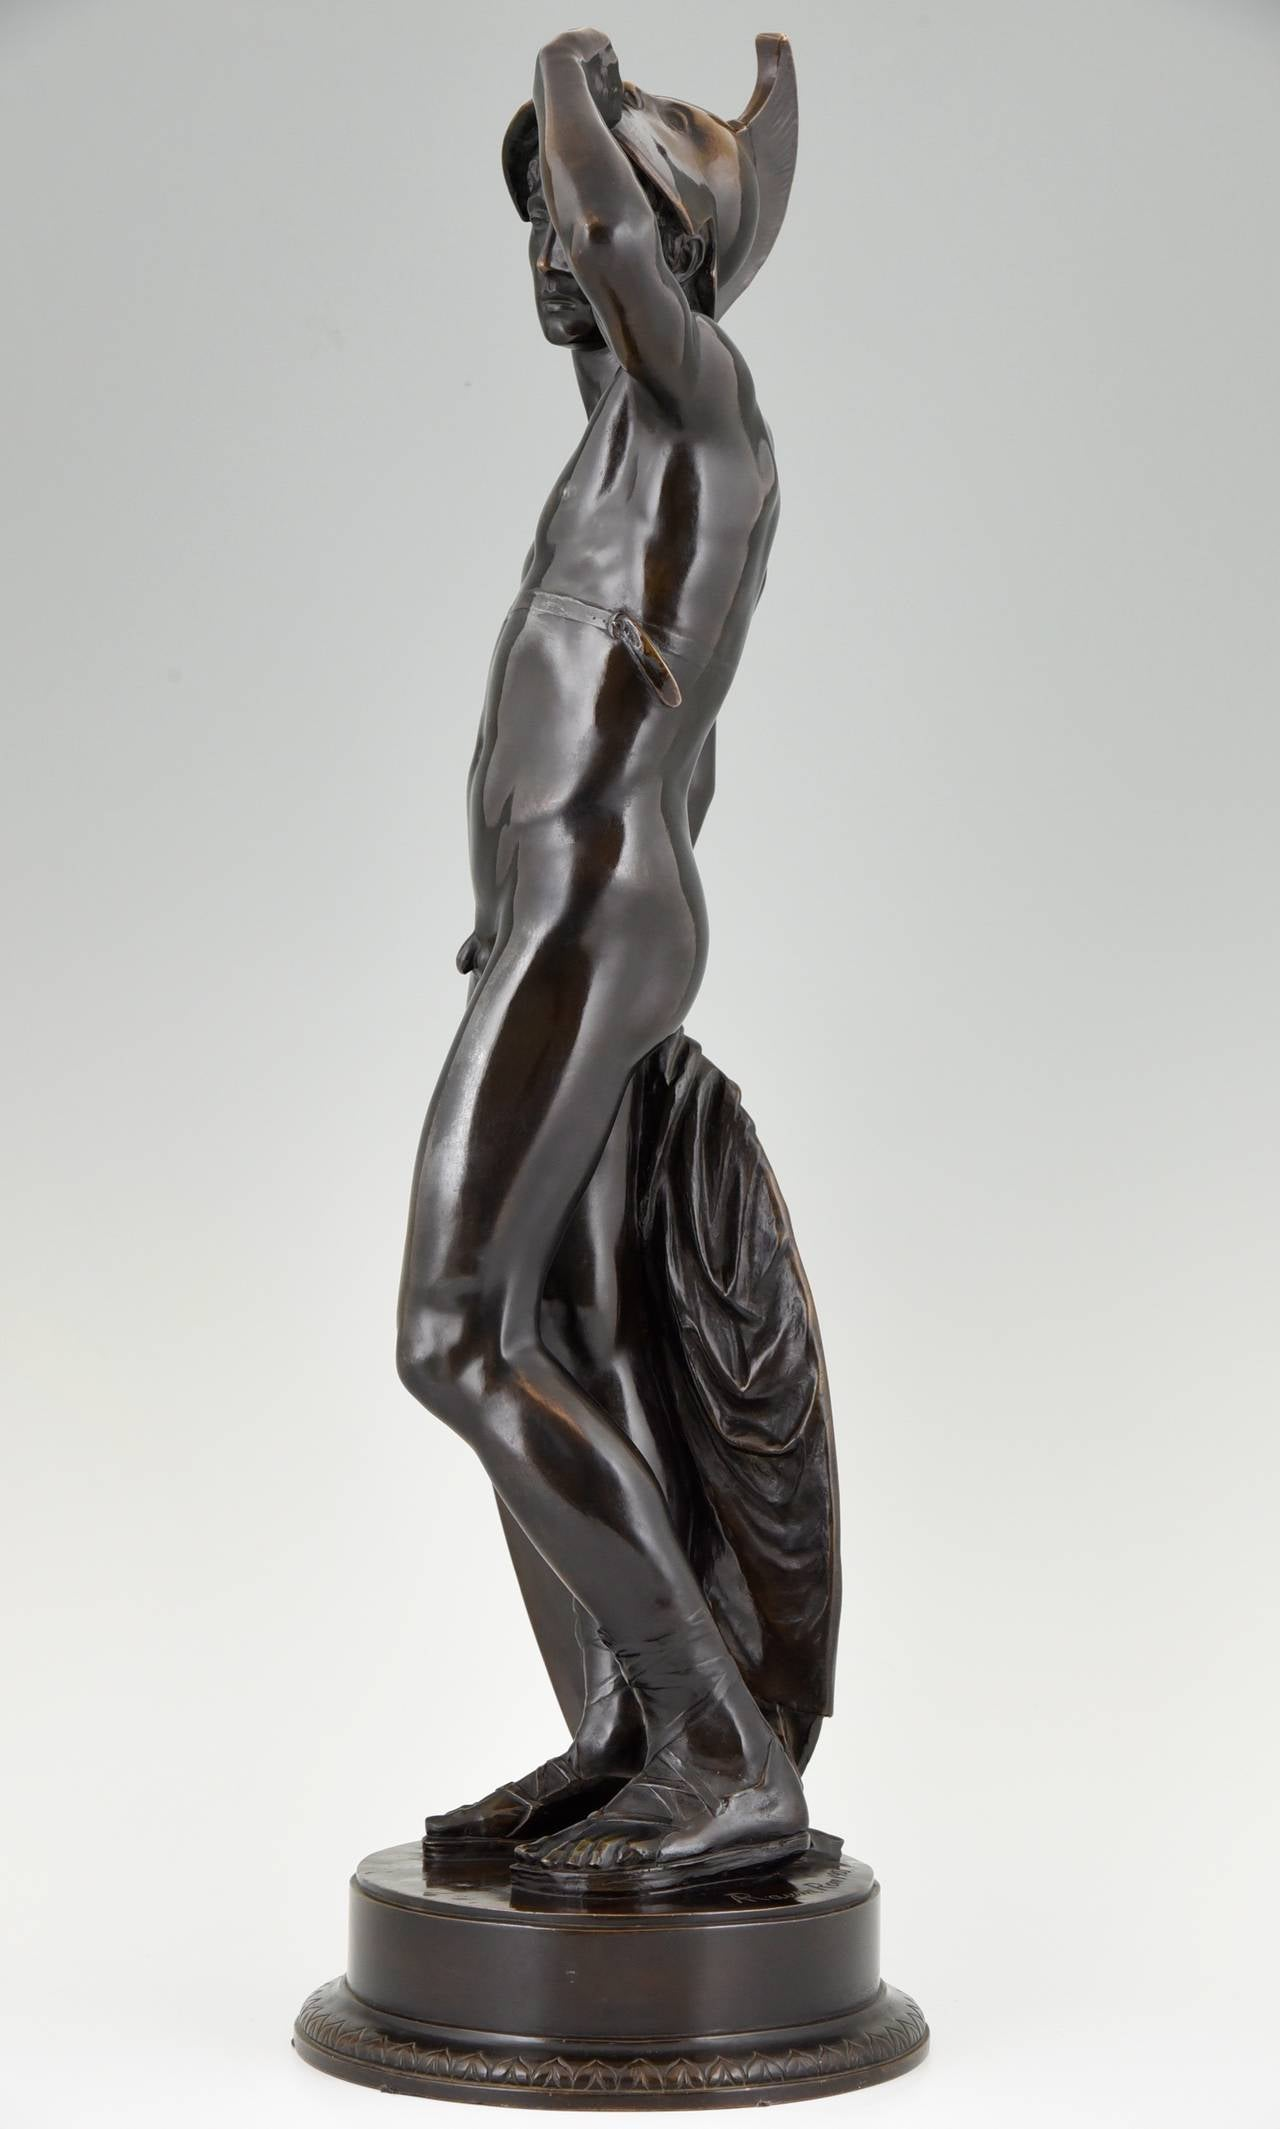 Antique sculpture of a standing male nude with helmet. 